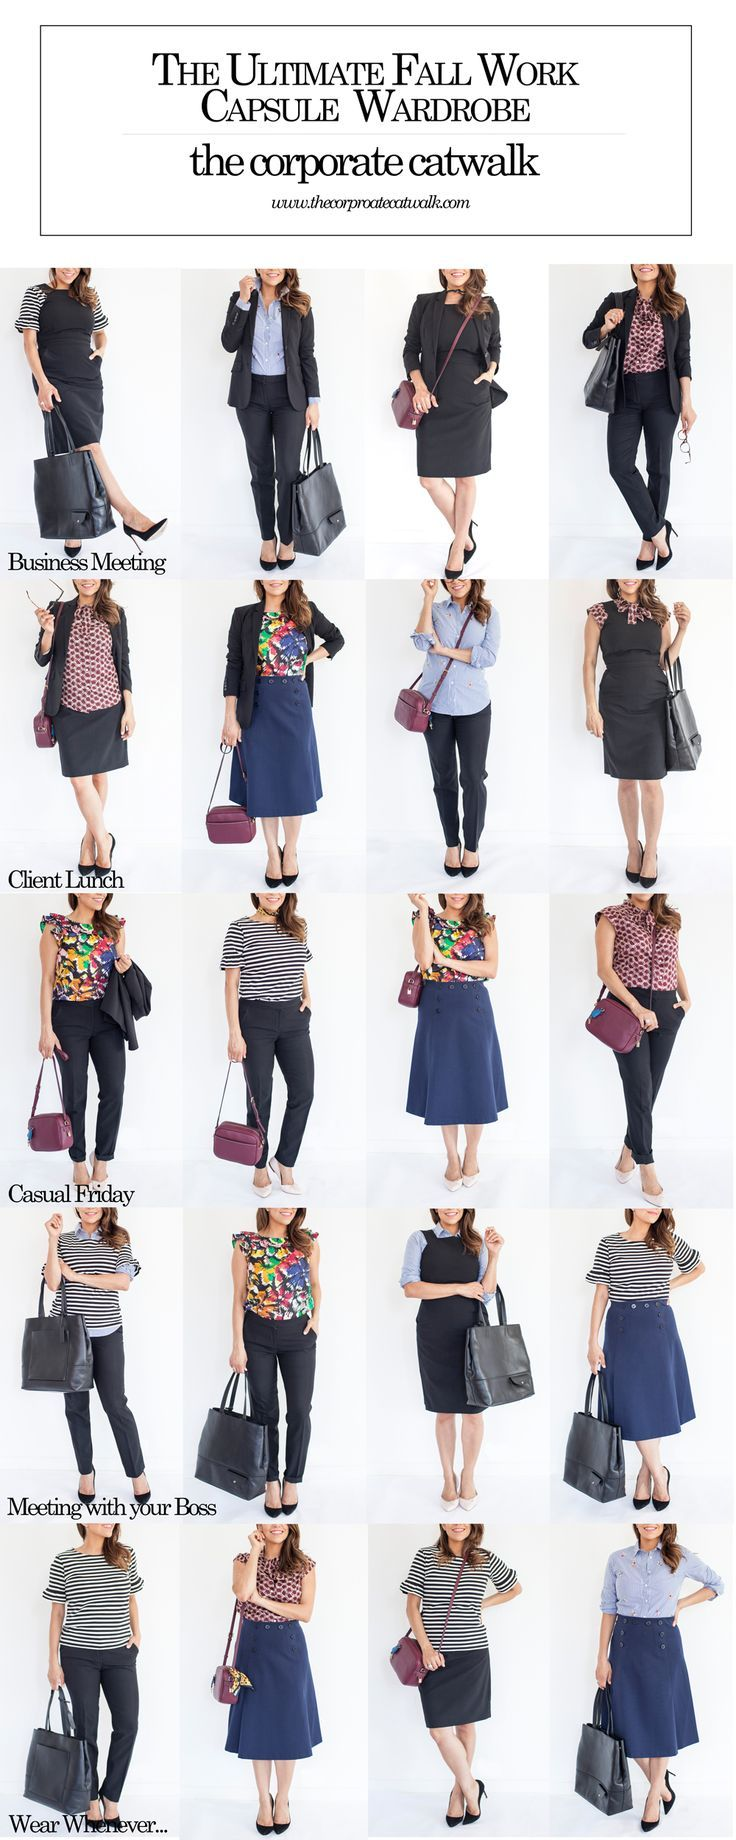 1000+ Images About Work Style On Pinterest